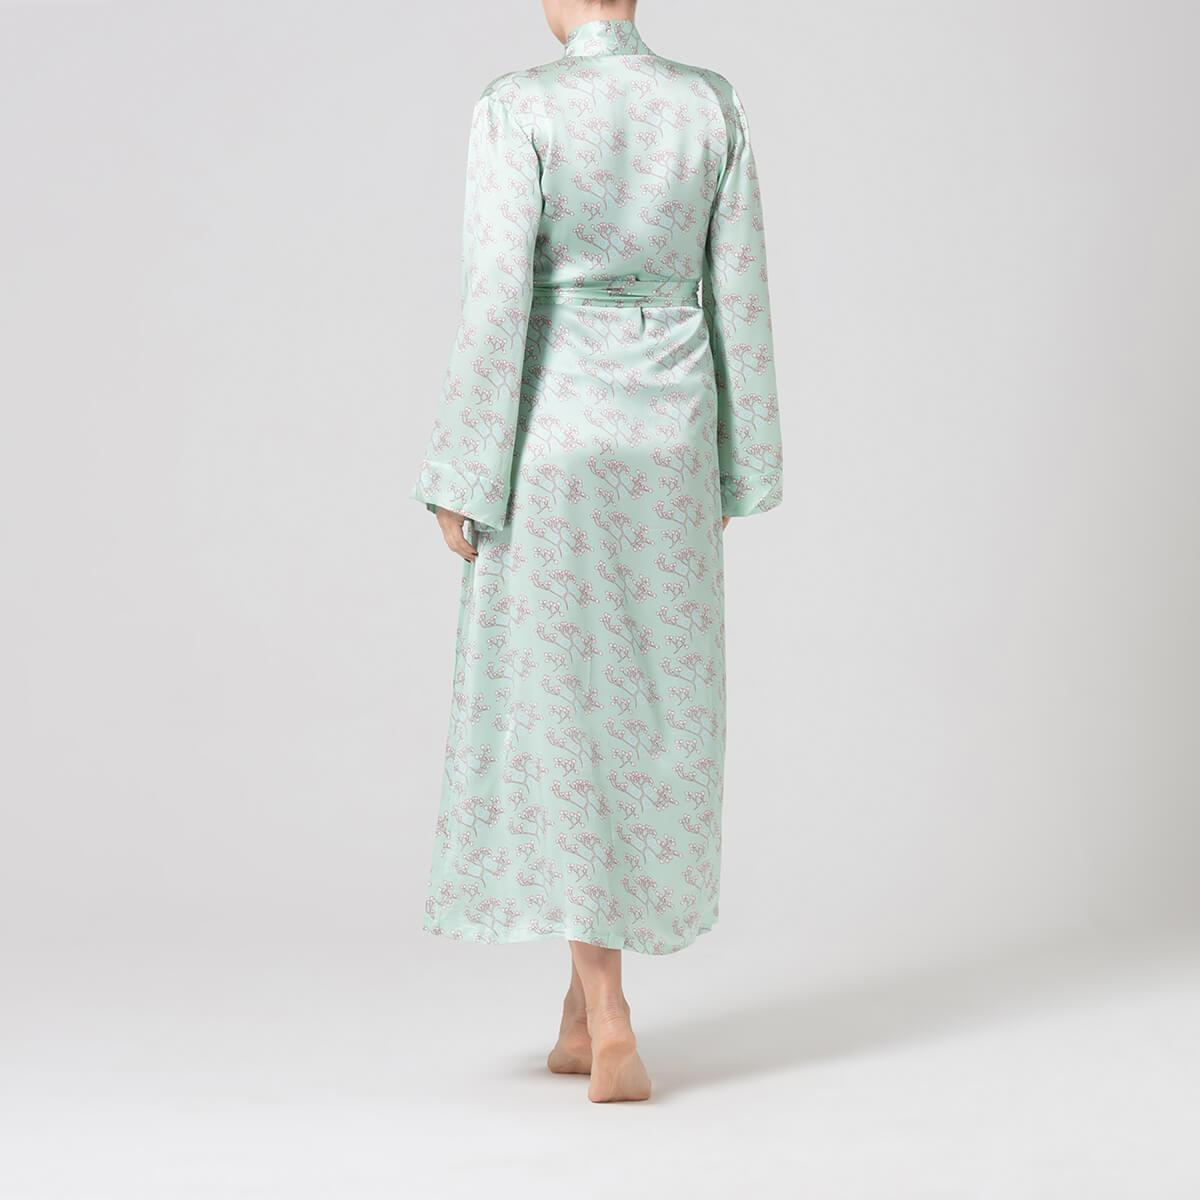 Alice   Astrid Green Printed Silk Dressing Gown in Green - Lyst 53684c15e